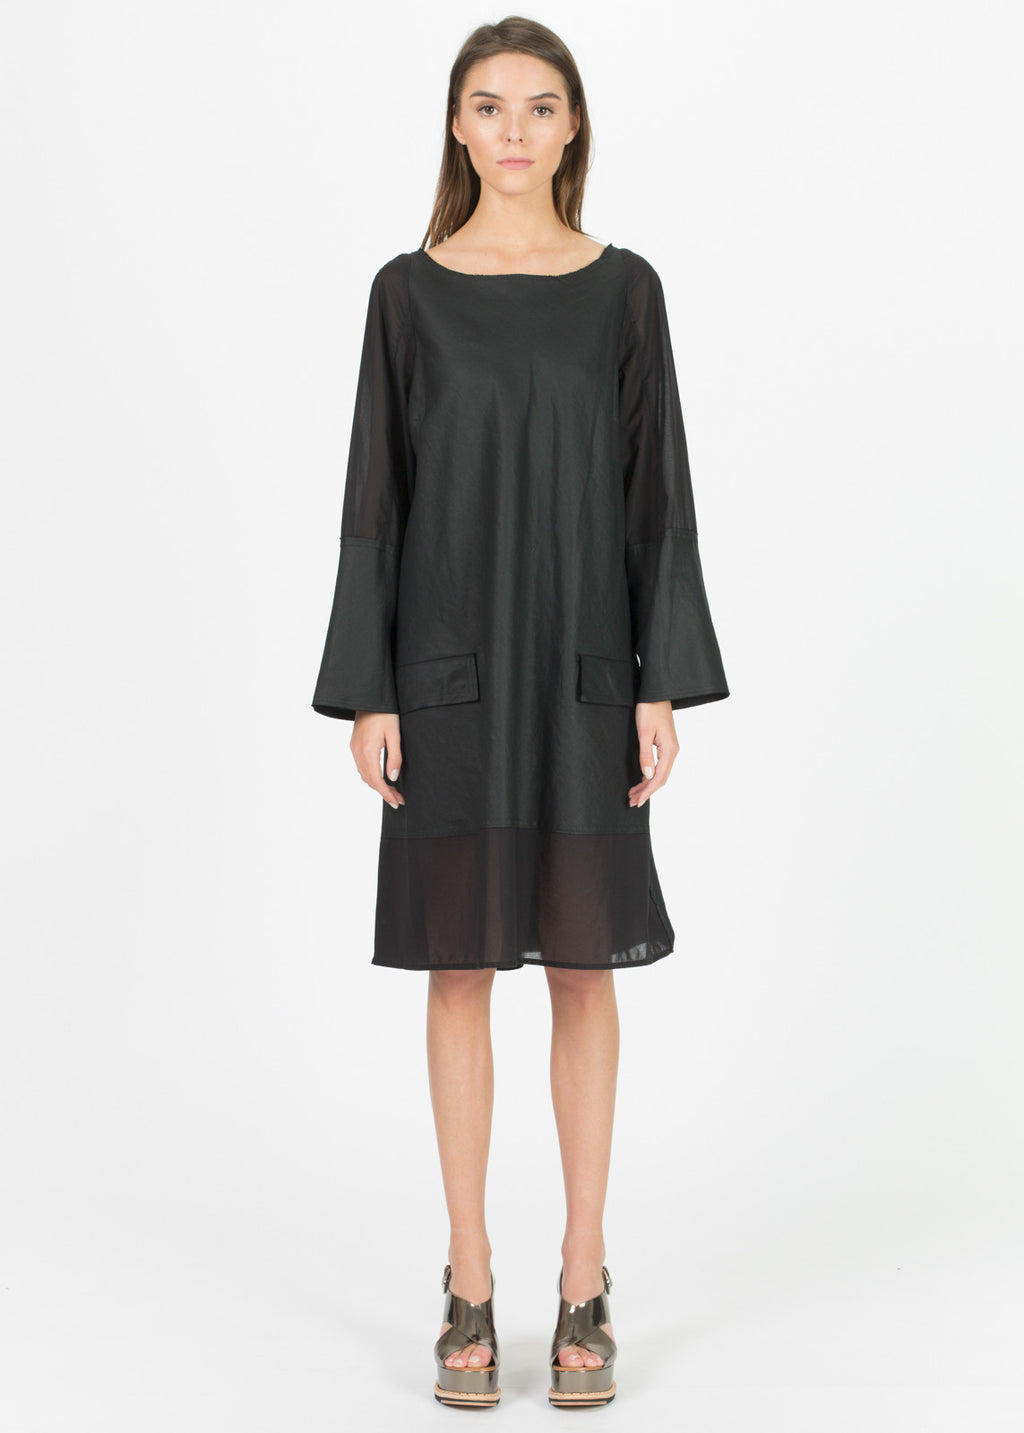 Evina Long Sleeve A-Line Dress